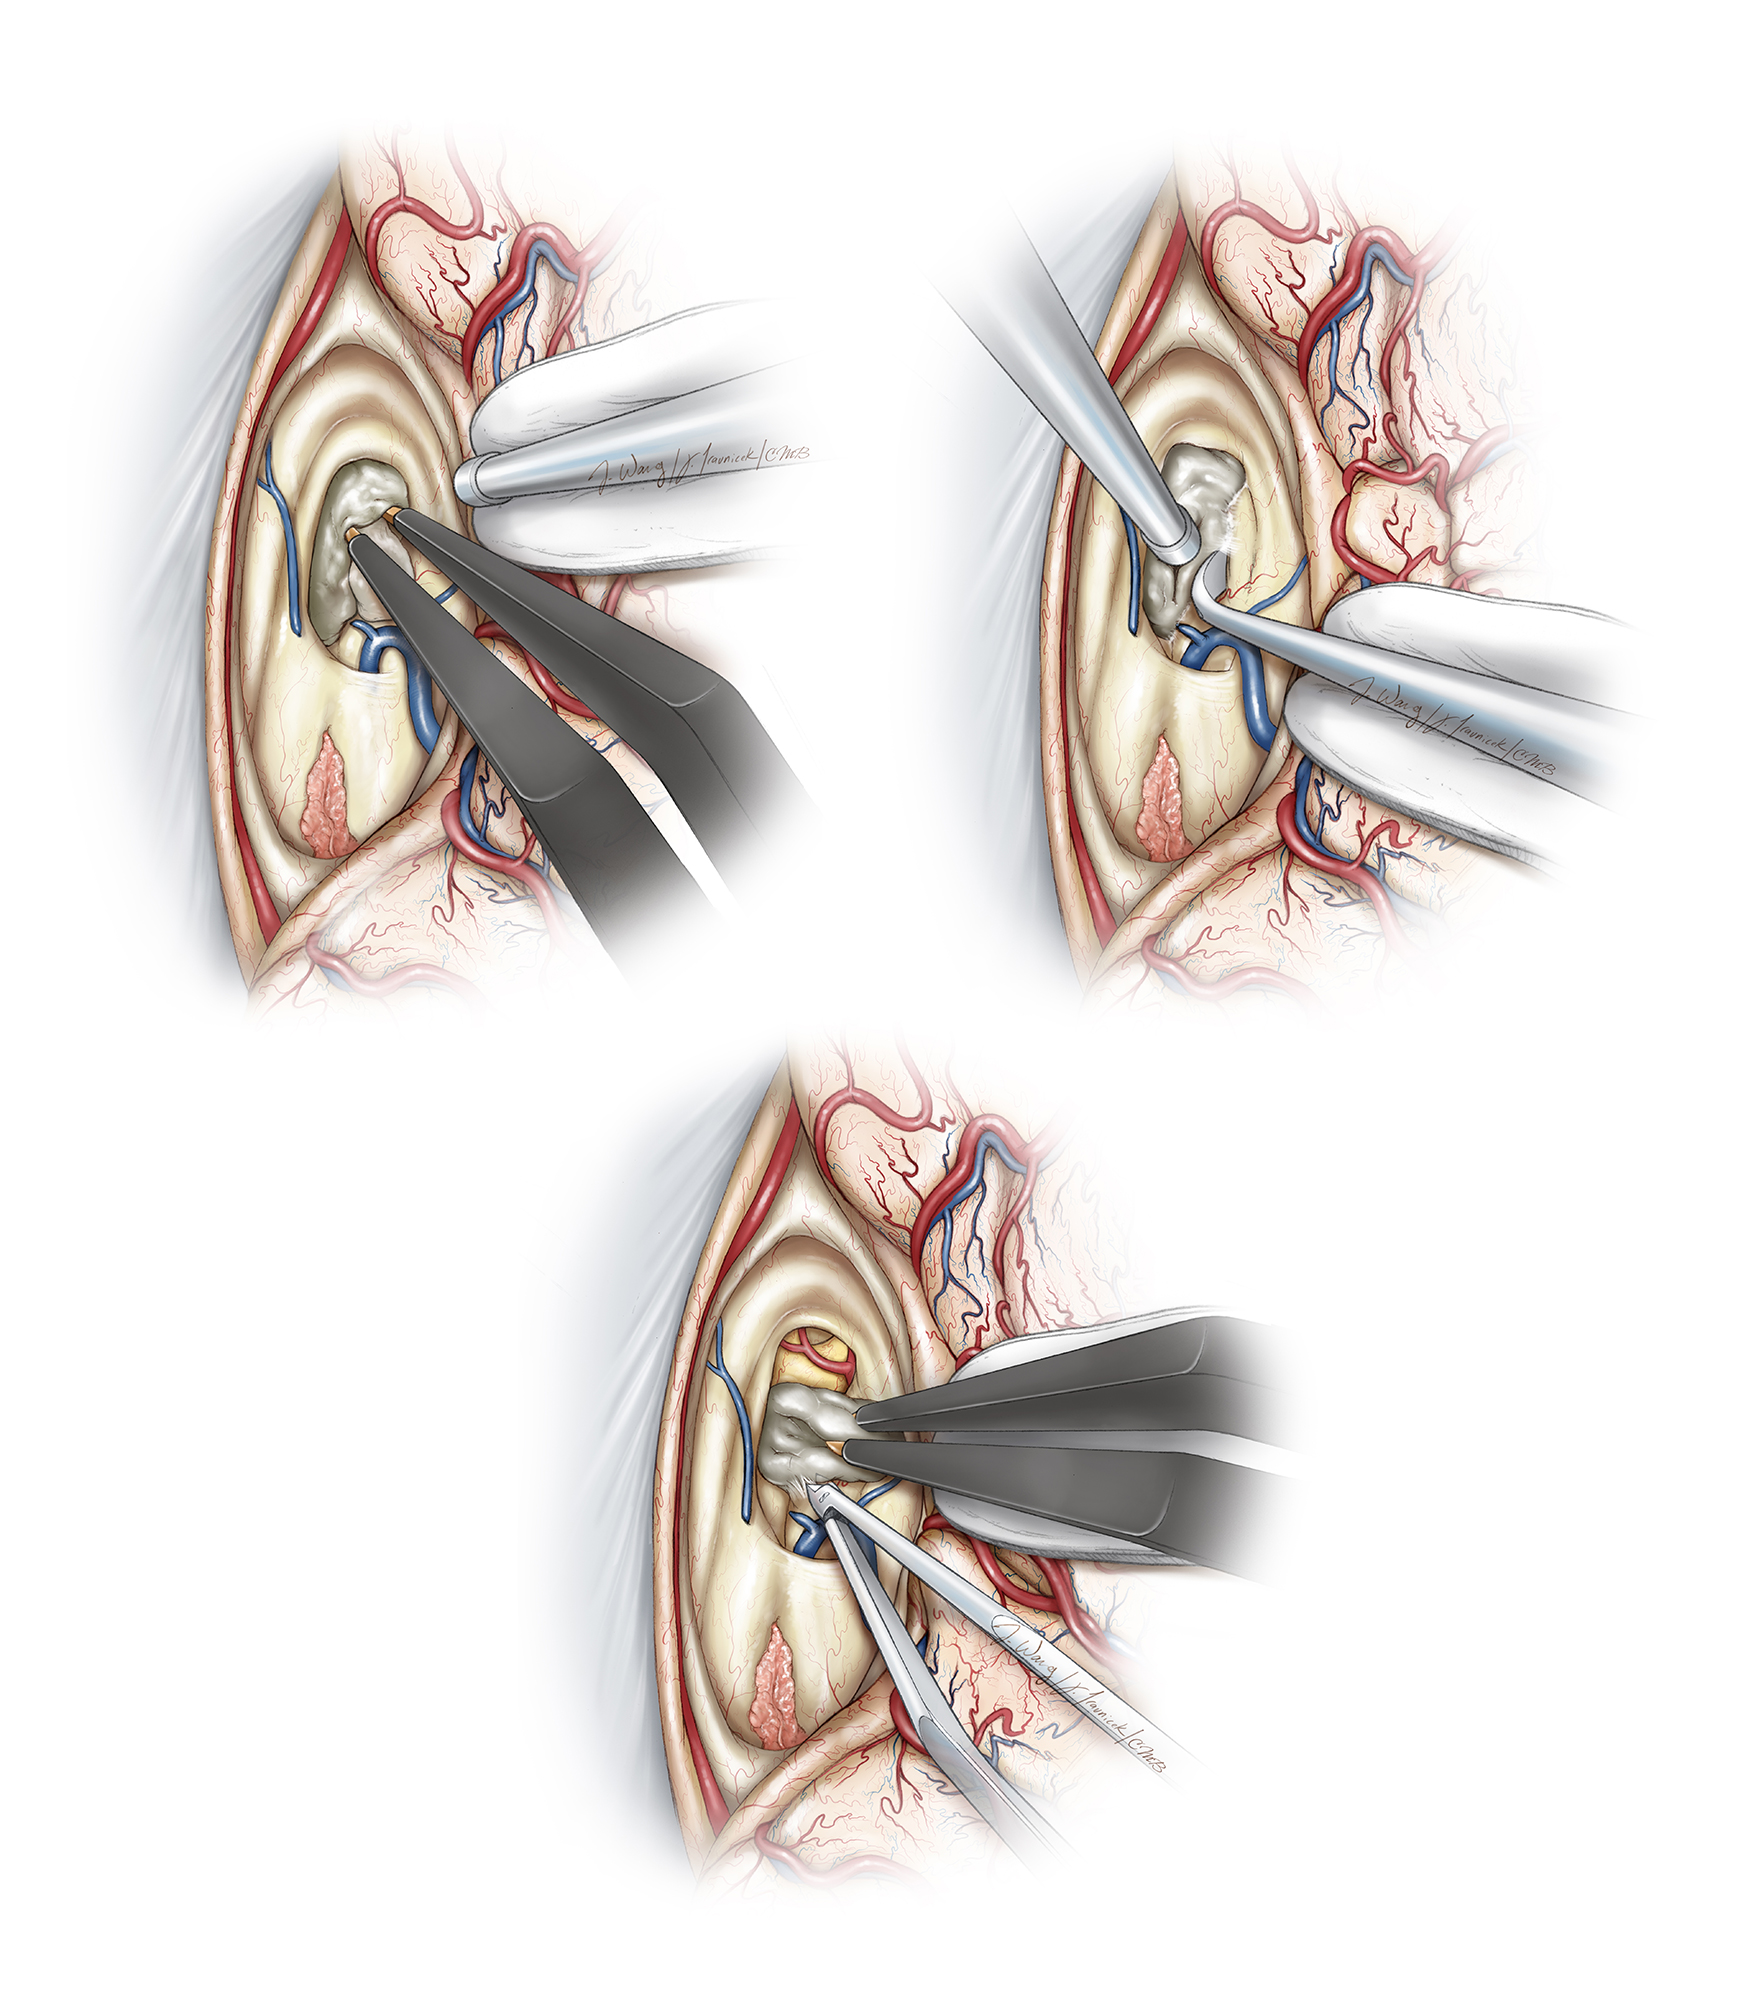 Figure 13: Before I debulk the tumor, I orient myself with respect to the walls of the ventricle so that I do not inadvertently penetrate the capsule during debulking maneuvers. I mobilize the tumor capsule from the superior walls of the ventricle (left upper image). Next, the tumor is enucleated using ultrasonic aspiration and its capsule is dissected away from the lateral walls (right upper image). These steps are repeated until the tumor capsule is sharply dissected off of the floor (lower image). If the tumor has eroded the floor of the third ventricle, the optic nerve and chiasm will often be apparent at the bottom of the resection cavity (Redrawn from Tew, van Loveren, Keller*).